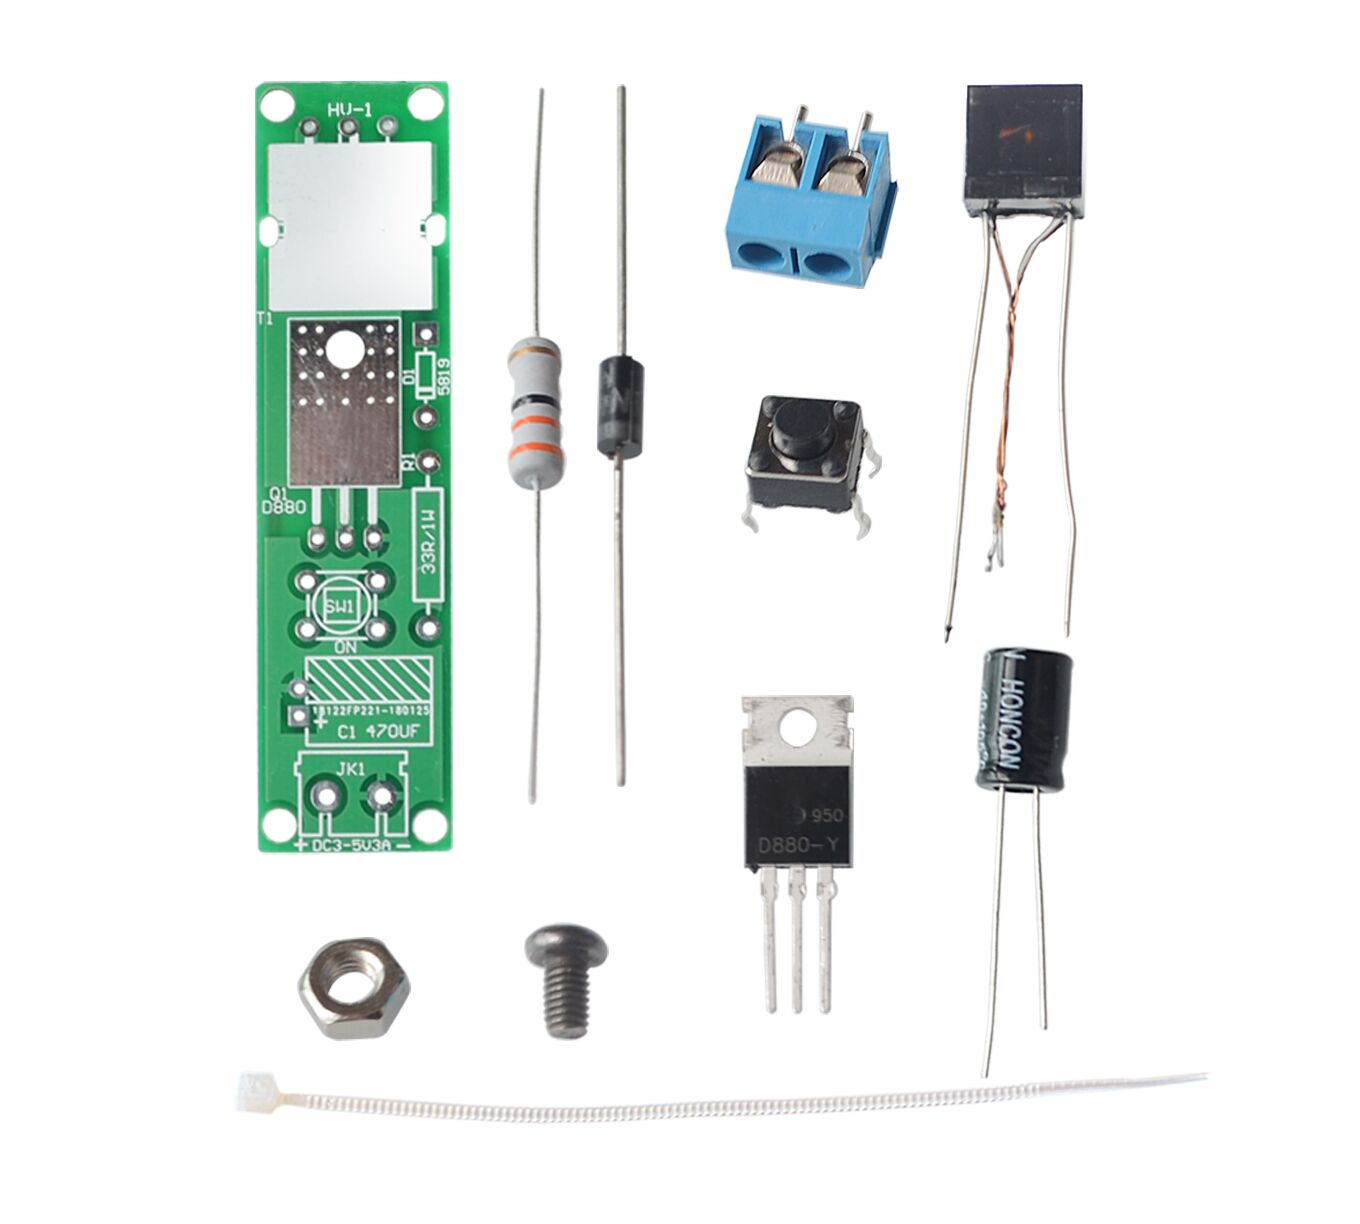 HV 1 High Voltage Igniter DIY Kit Arc Ignition Parts DIY Kit Arc Generator Arc Cigarette Igniter Module PCB Board DC 3V 5V 3A-in Integrated Circuits from Electronic Components & Supplies